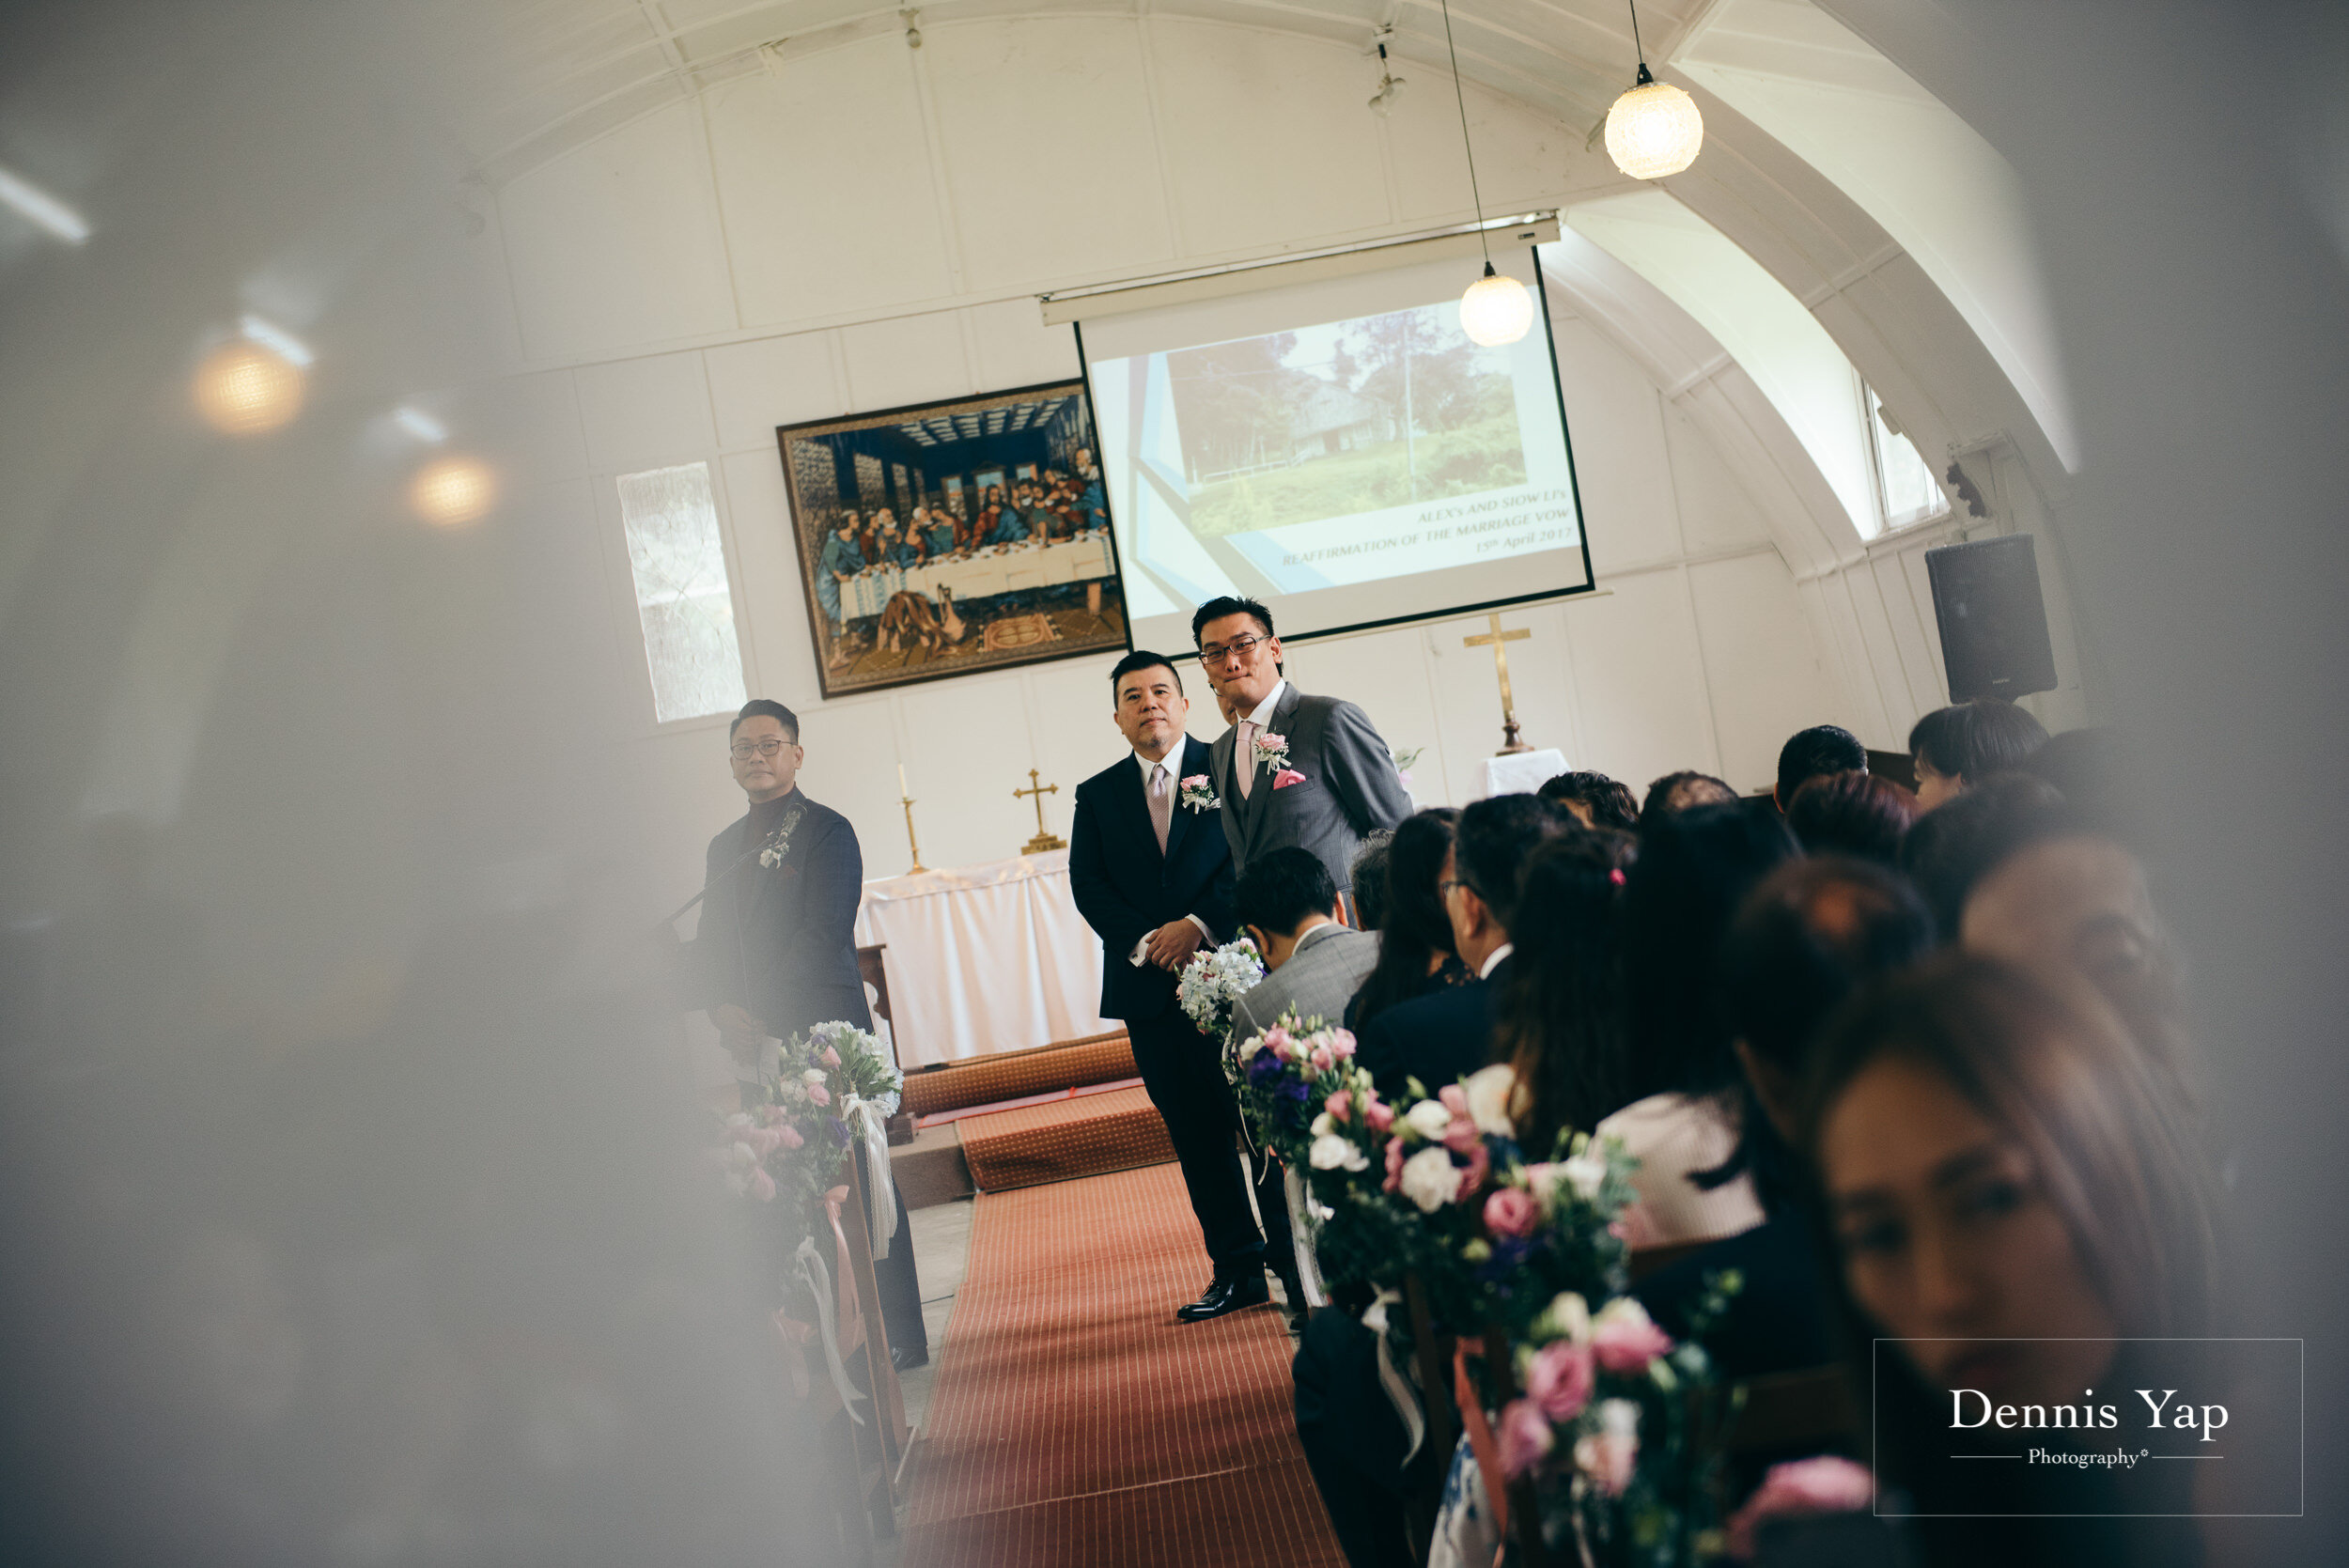 alex siowli wedding reception cameron highlands smoke house dennis yap photography malaysia traditional church wedding-118.jpg